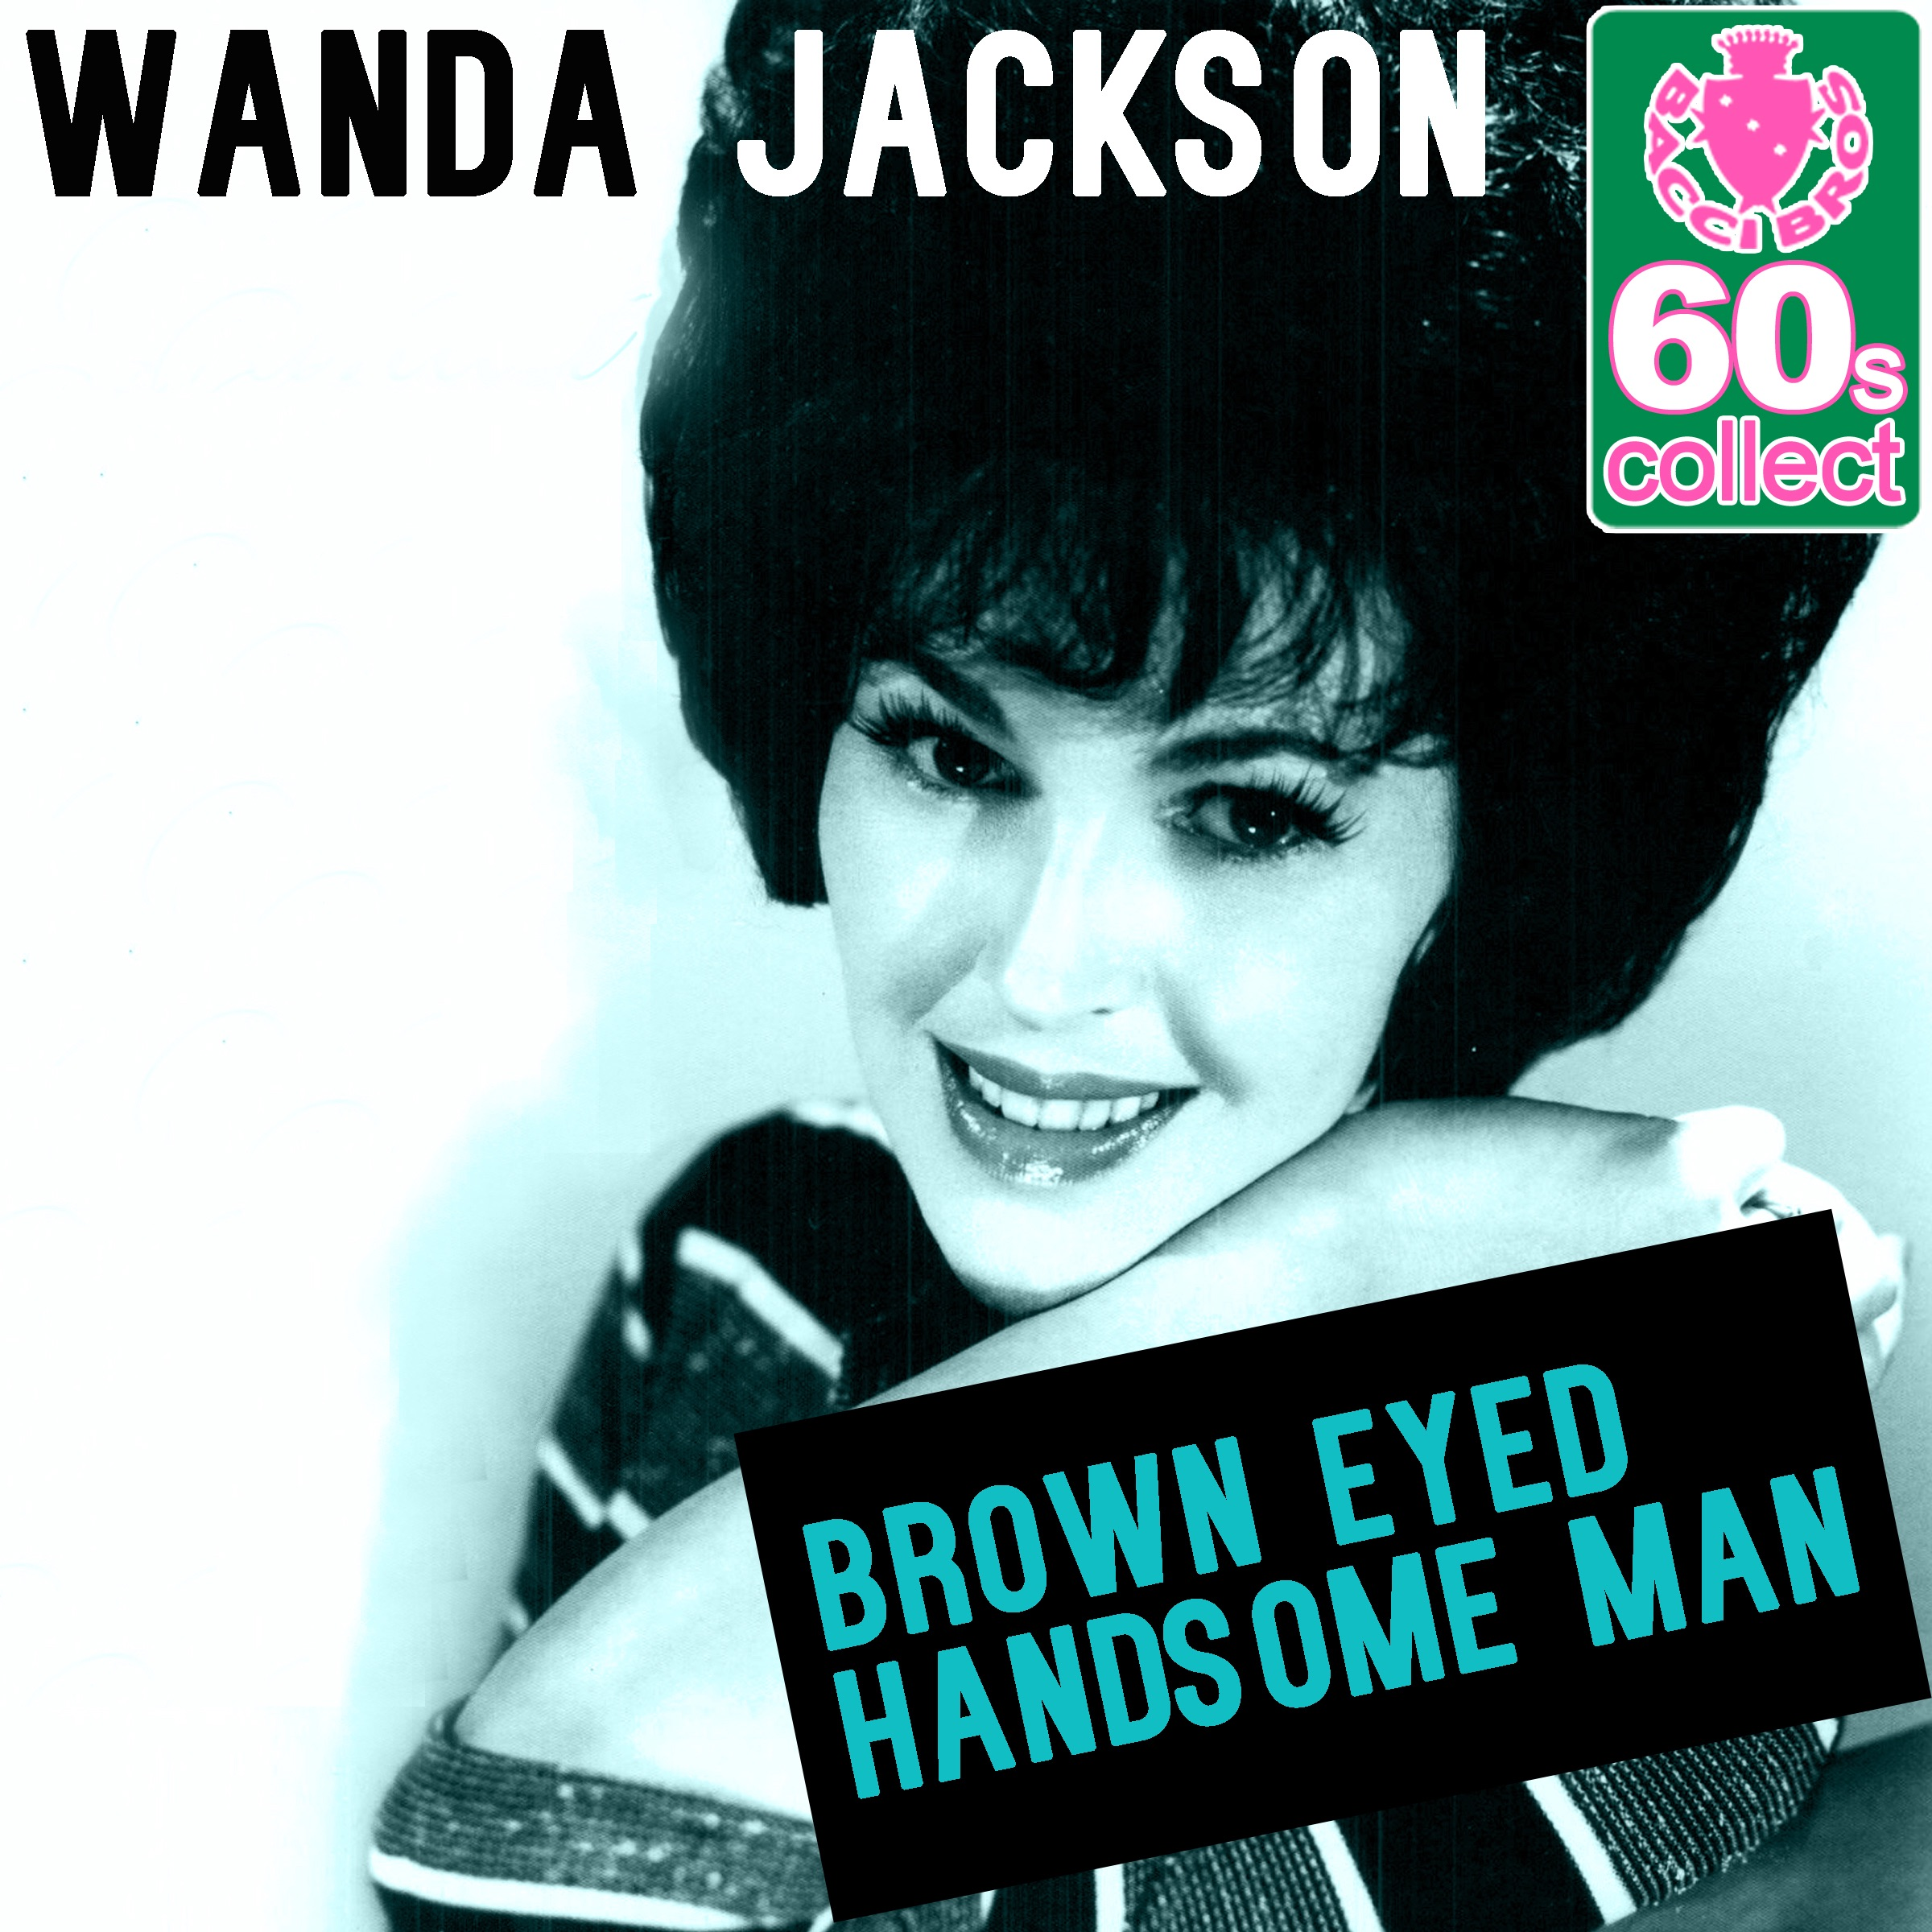 Brown Eyed Handsome Man (Remastered) - Single